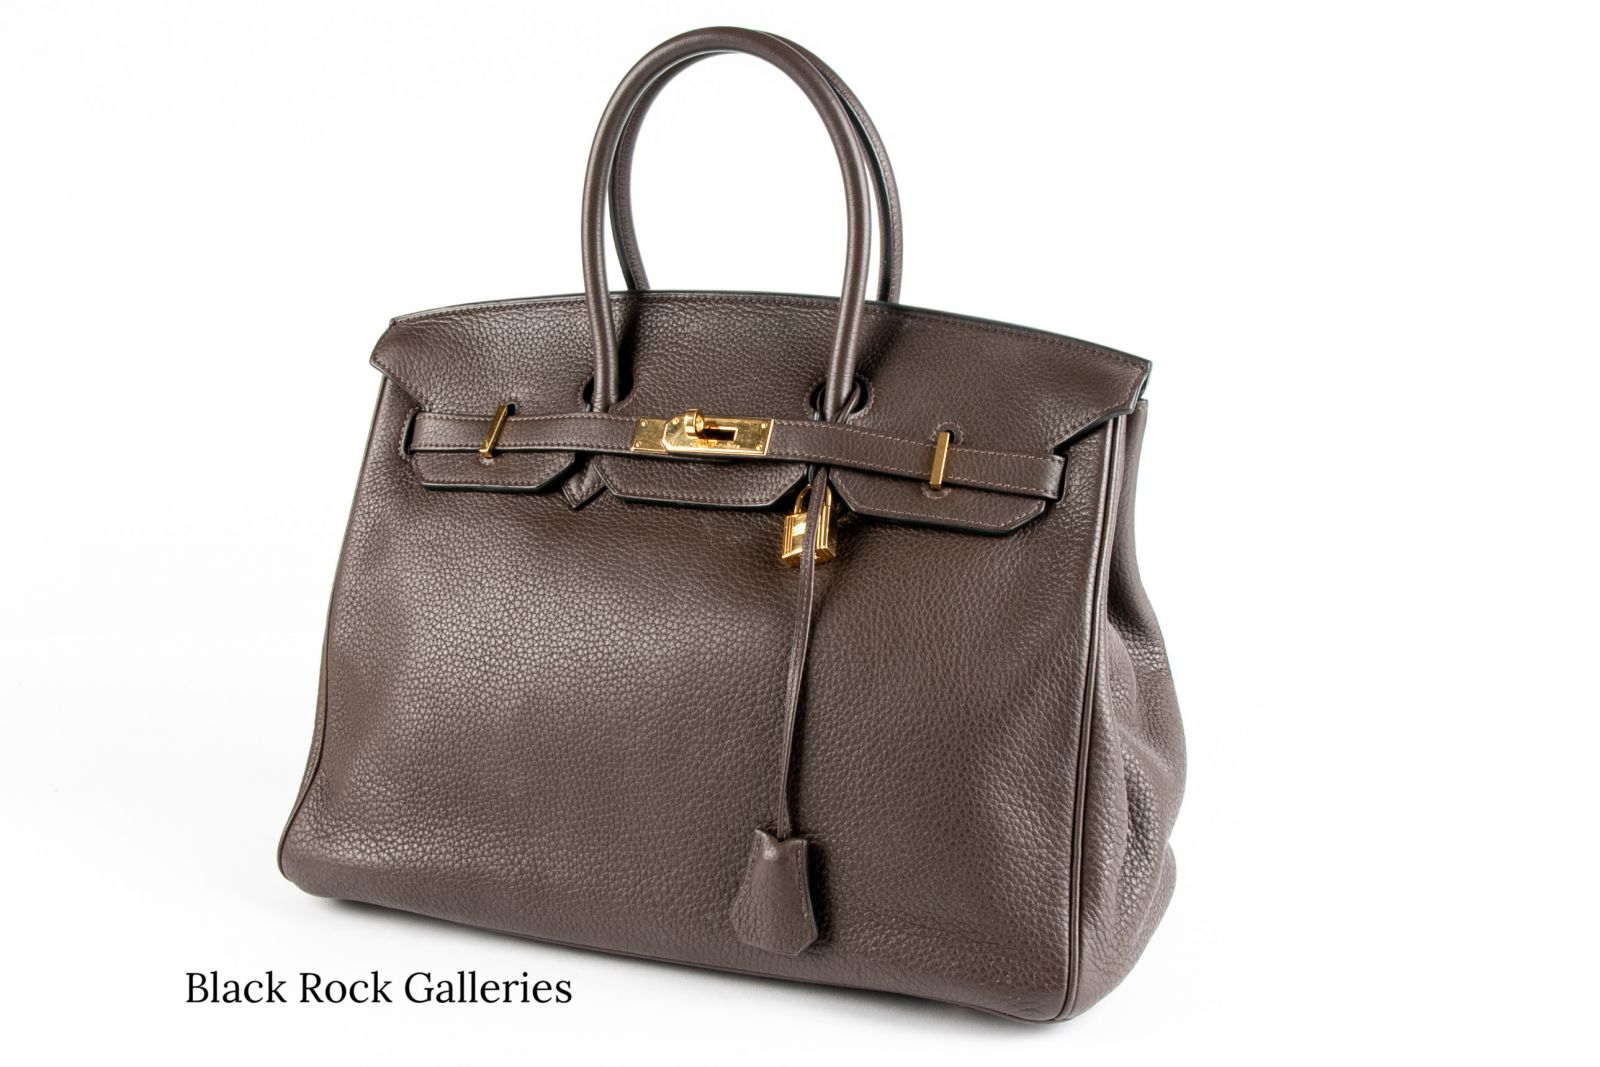 Chocolate Brown Hermes Birkin Bag with Gold-tone accents